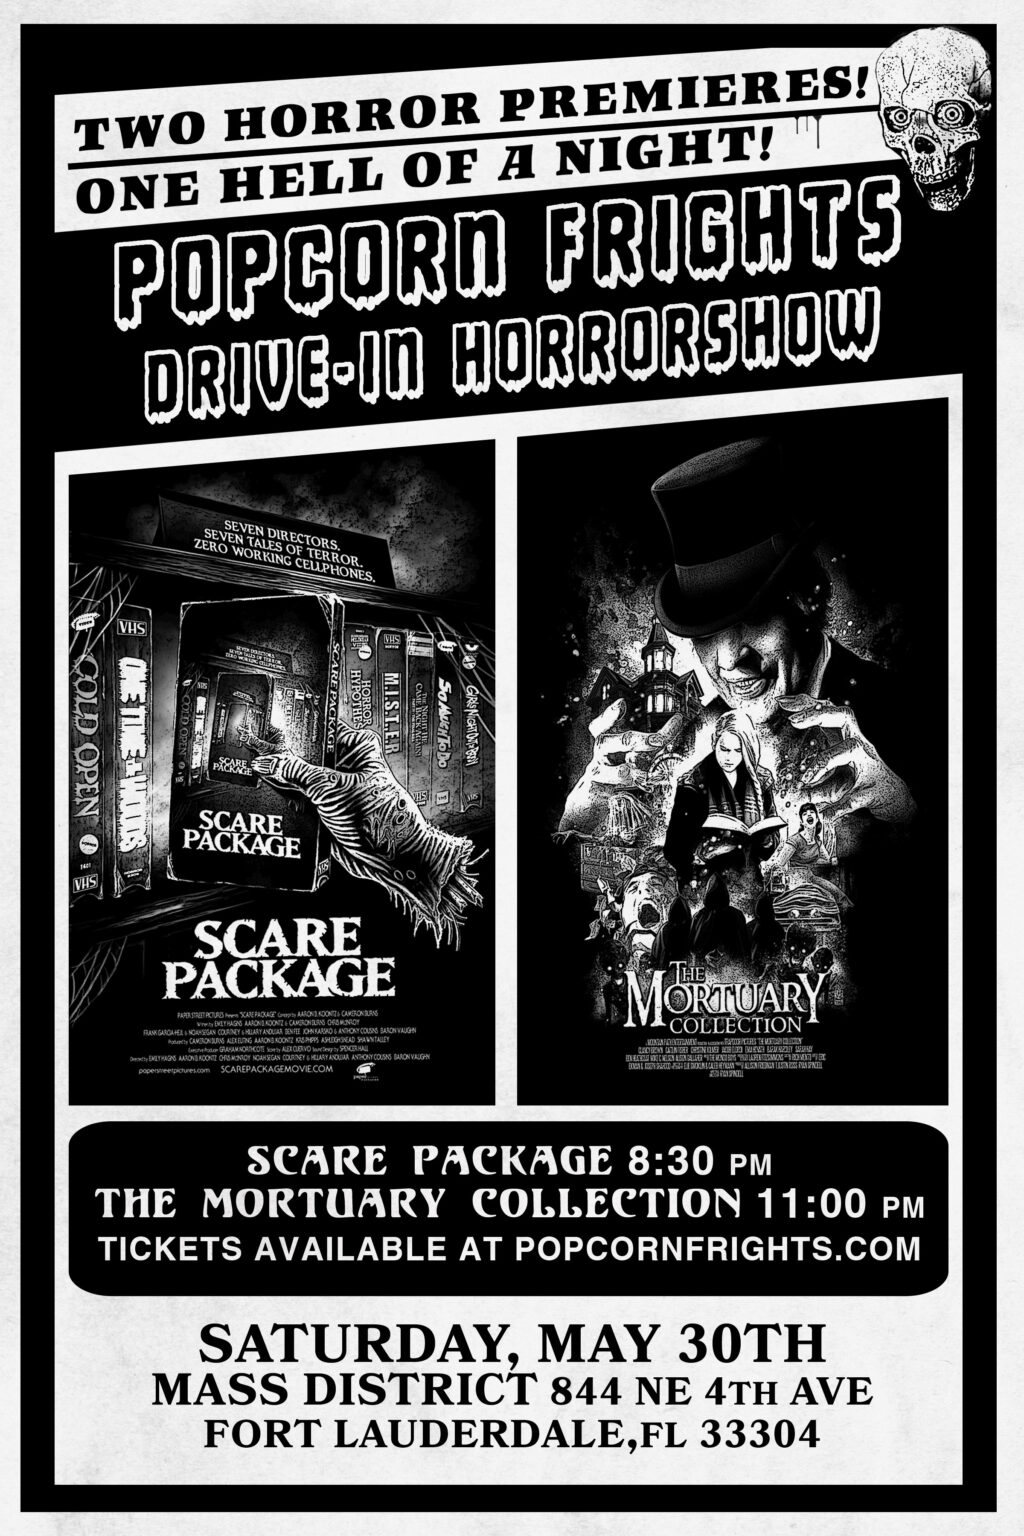 POPCORN FRIGHTS DRIVE IN FINAL 1024x1536 - Popcorn Frights Launches  Drive-In Horrorshow Series with SCARE PACKAGE & THE MORTUARY COLLECTION